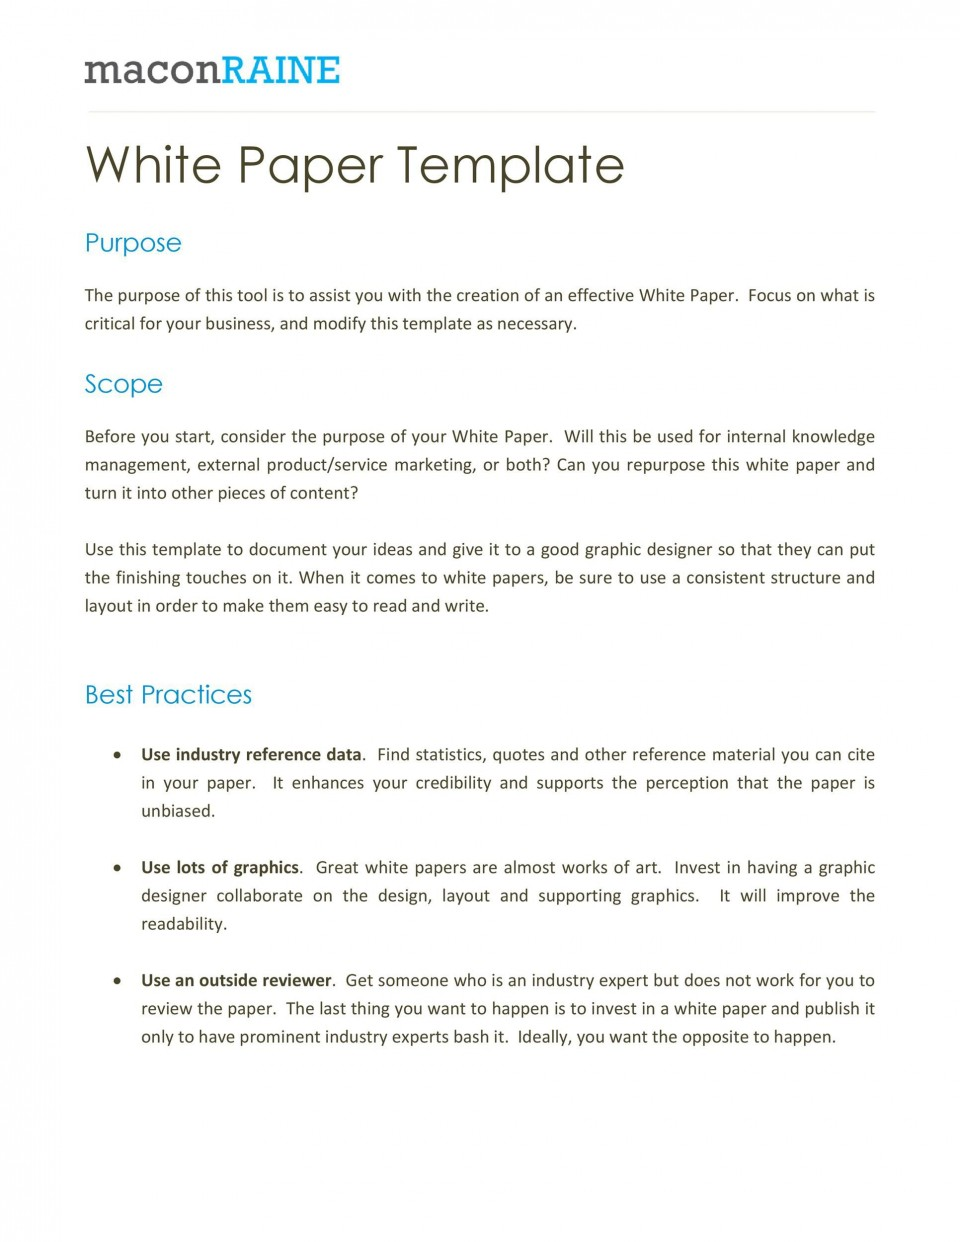 006 Amazing Free White Paper Template Image  Word 2016 Indesign Microsoft960